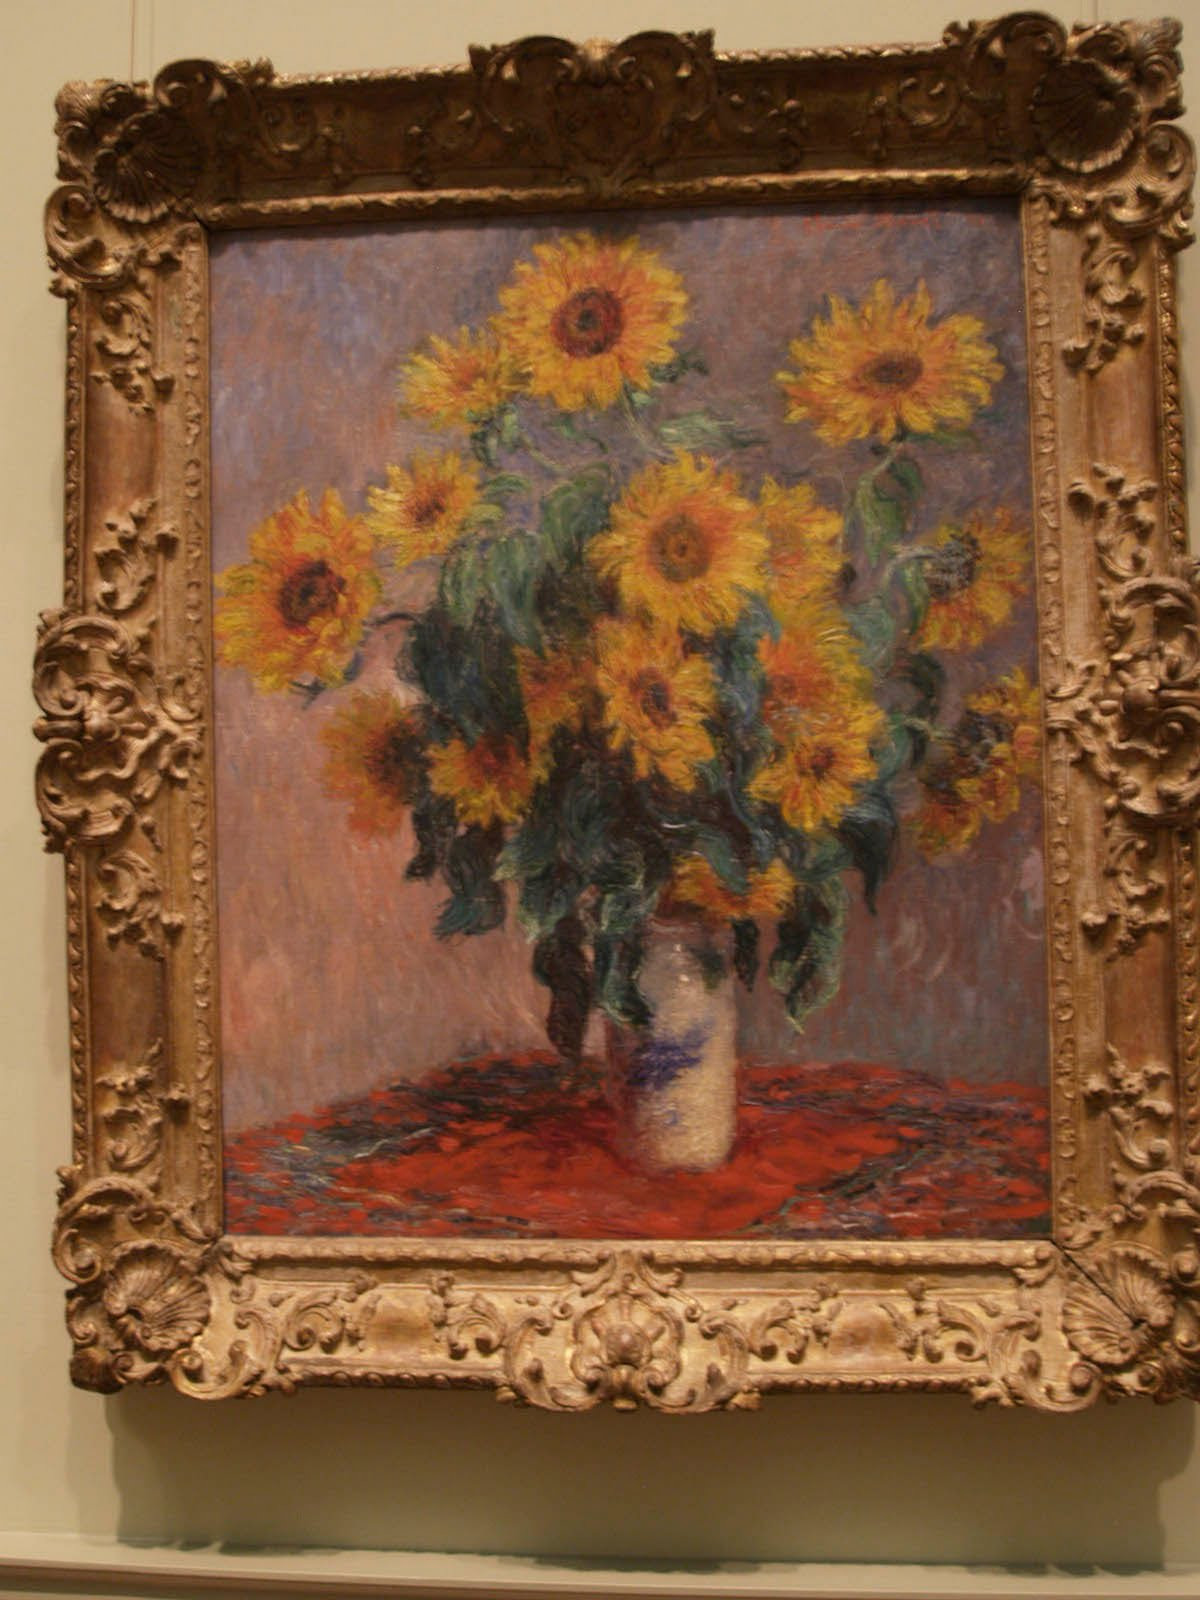 Sunflowers In A Vase Van Gogh Of the Art Of Painting September 2010 for Bouquet Of Sunflowers 1881 Metropolitan Museum Of Art New York City